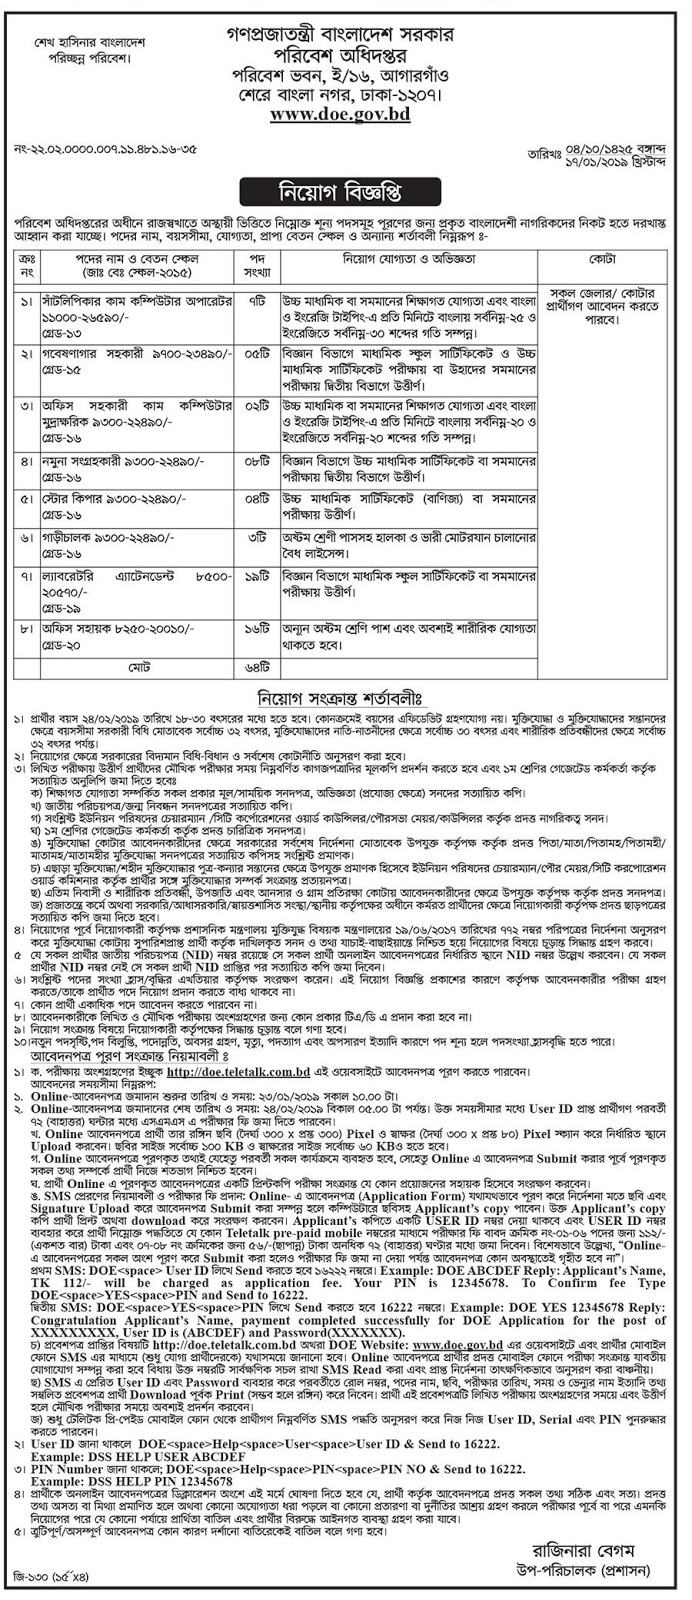 Department of Environment Job Circular 2019